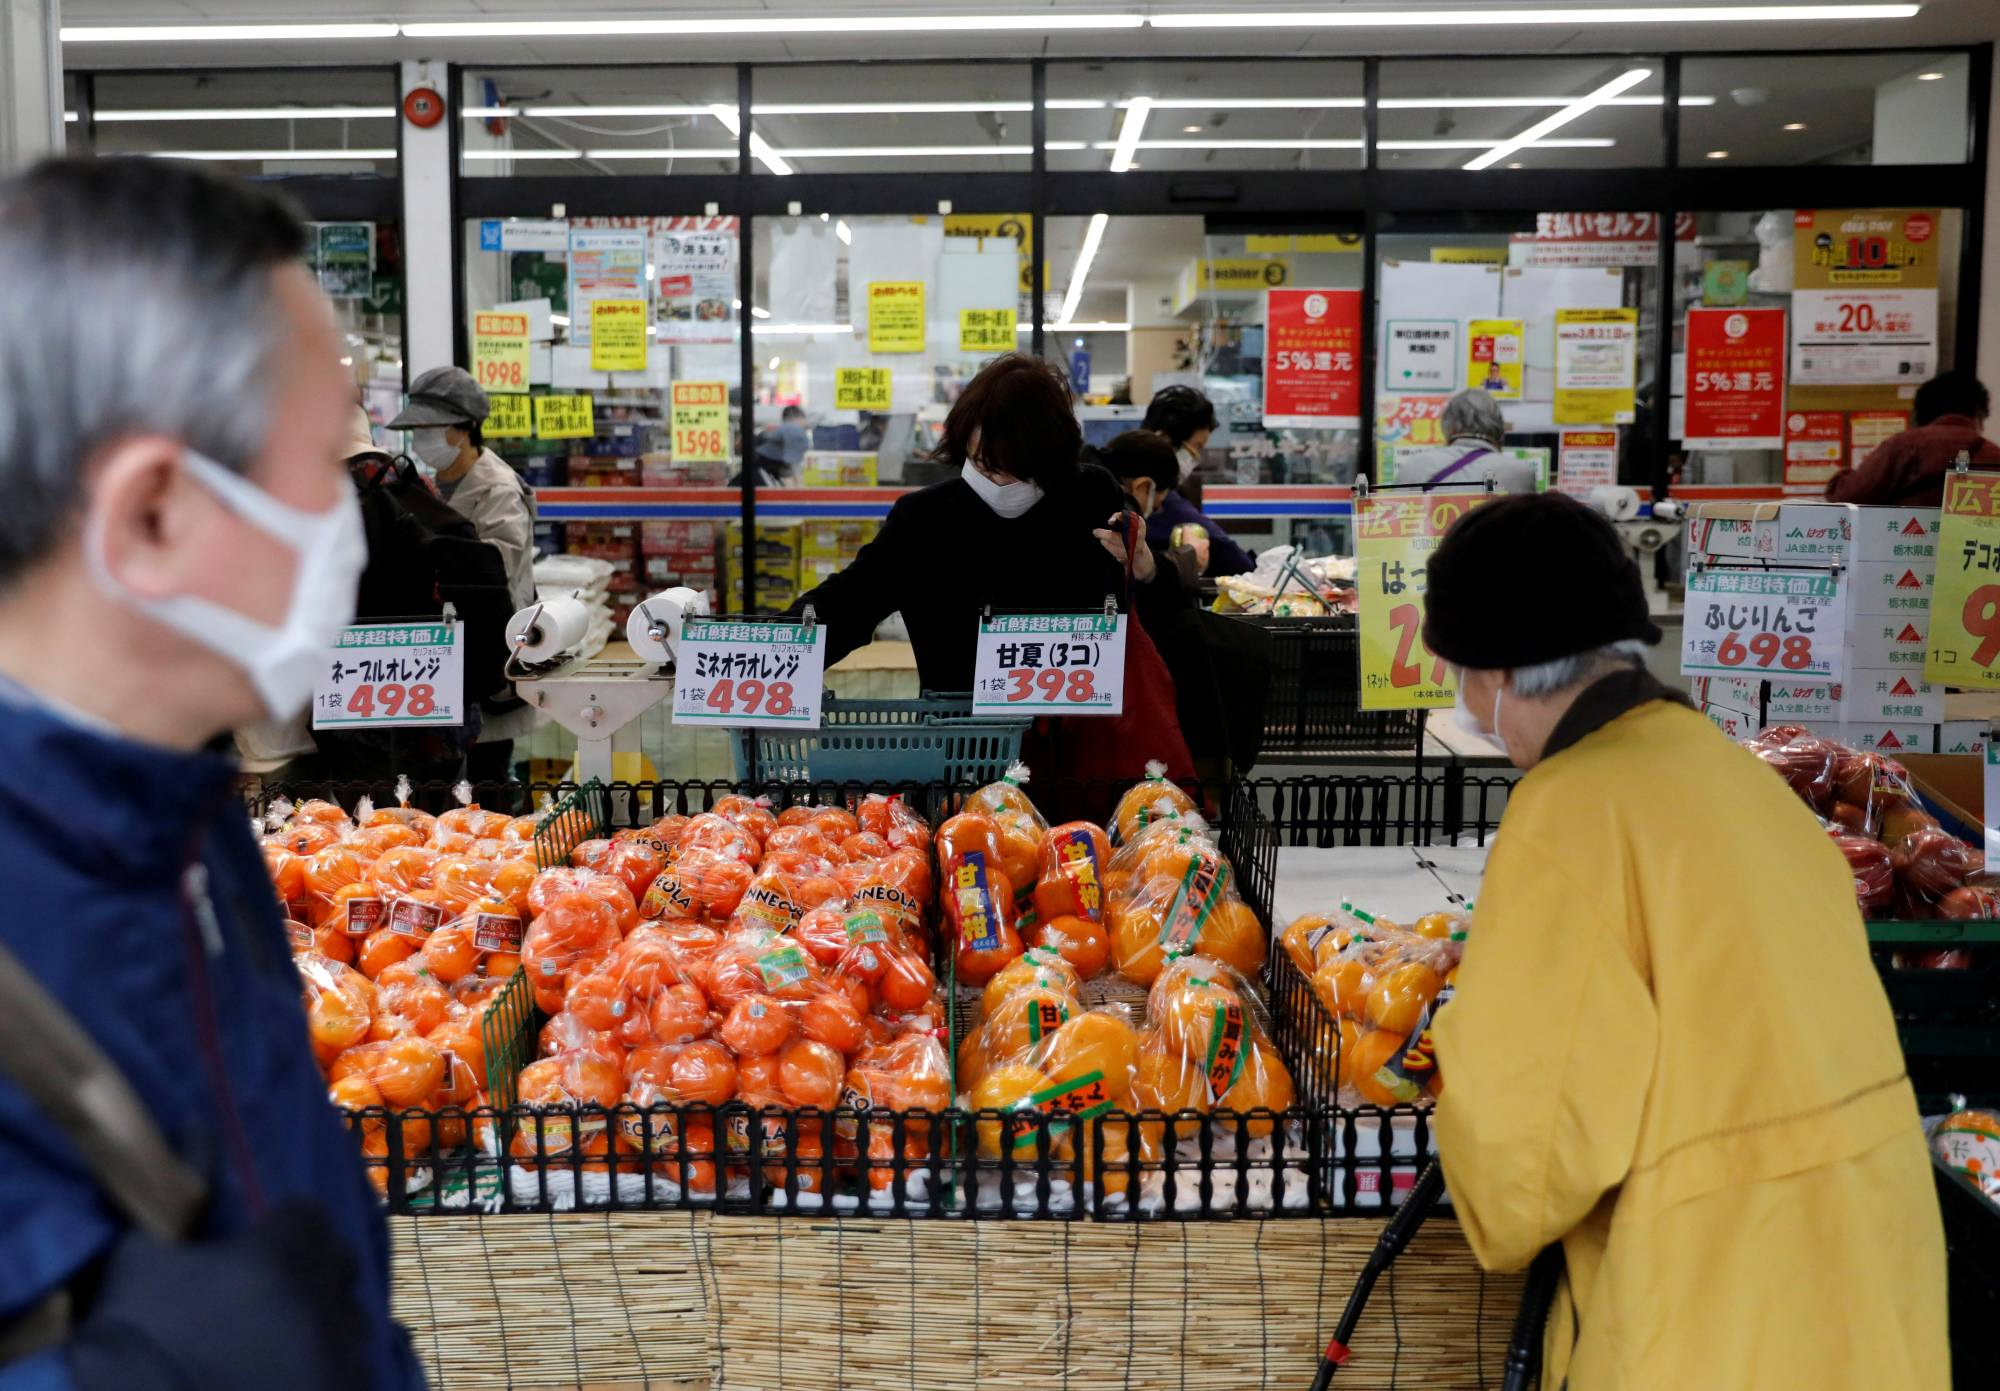 No masking the concern: Tokyoites shop while wearing masks amid the coronavirus outbreak. As the country relaxes measures to curb the spread of infection, some people are expressing their unease. | REUTERS